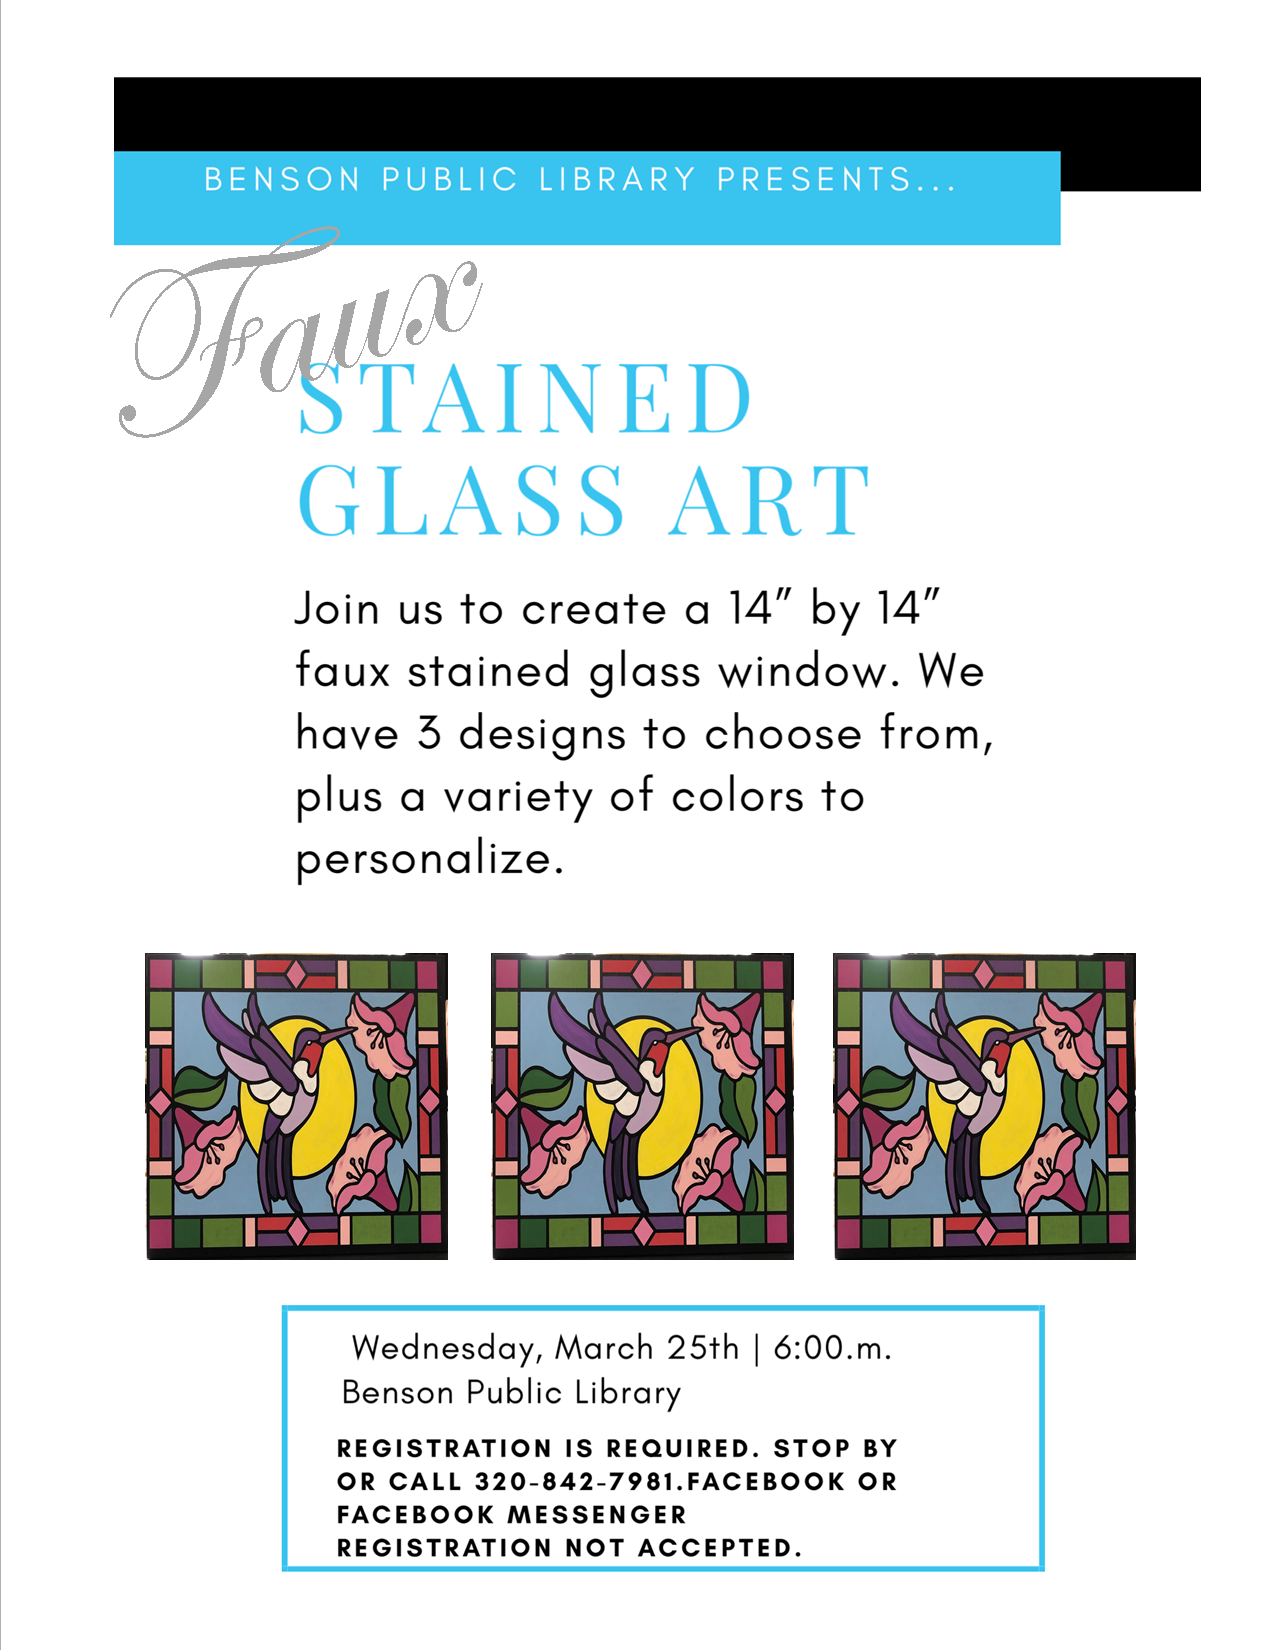 Join us on Wednesday, March 25 at 6 pm for a Faux Stained Glass Class. Pre-registration is required.